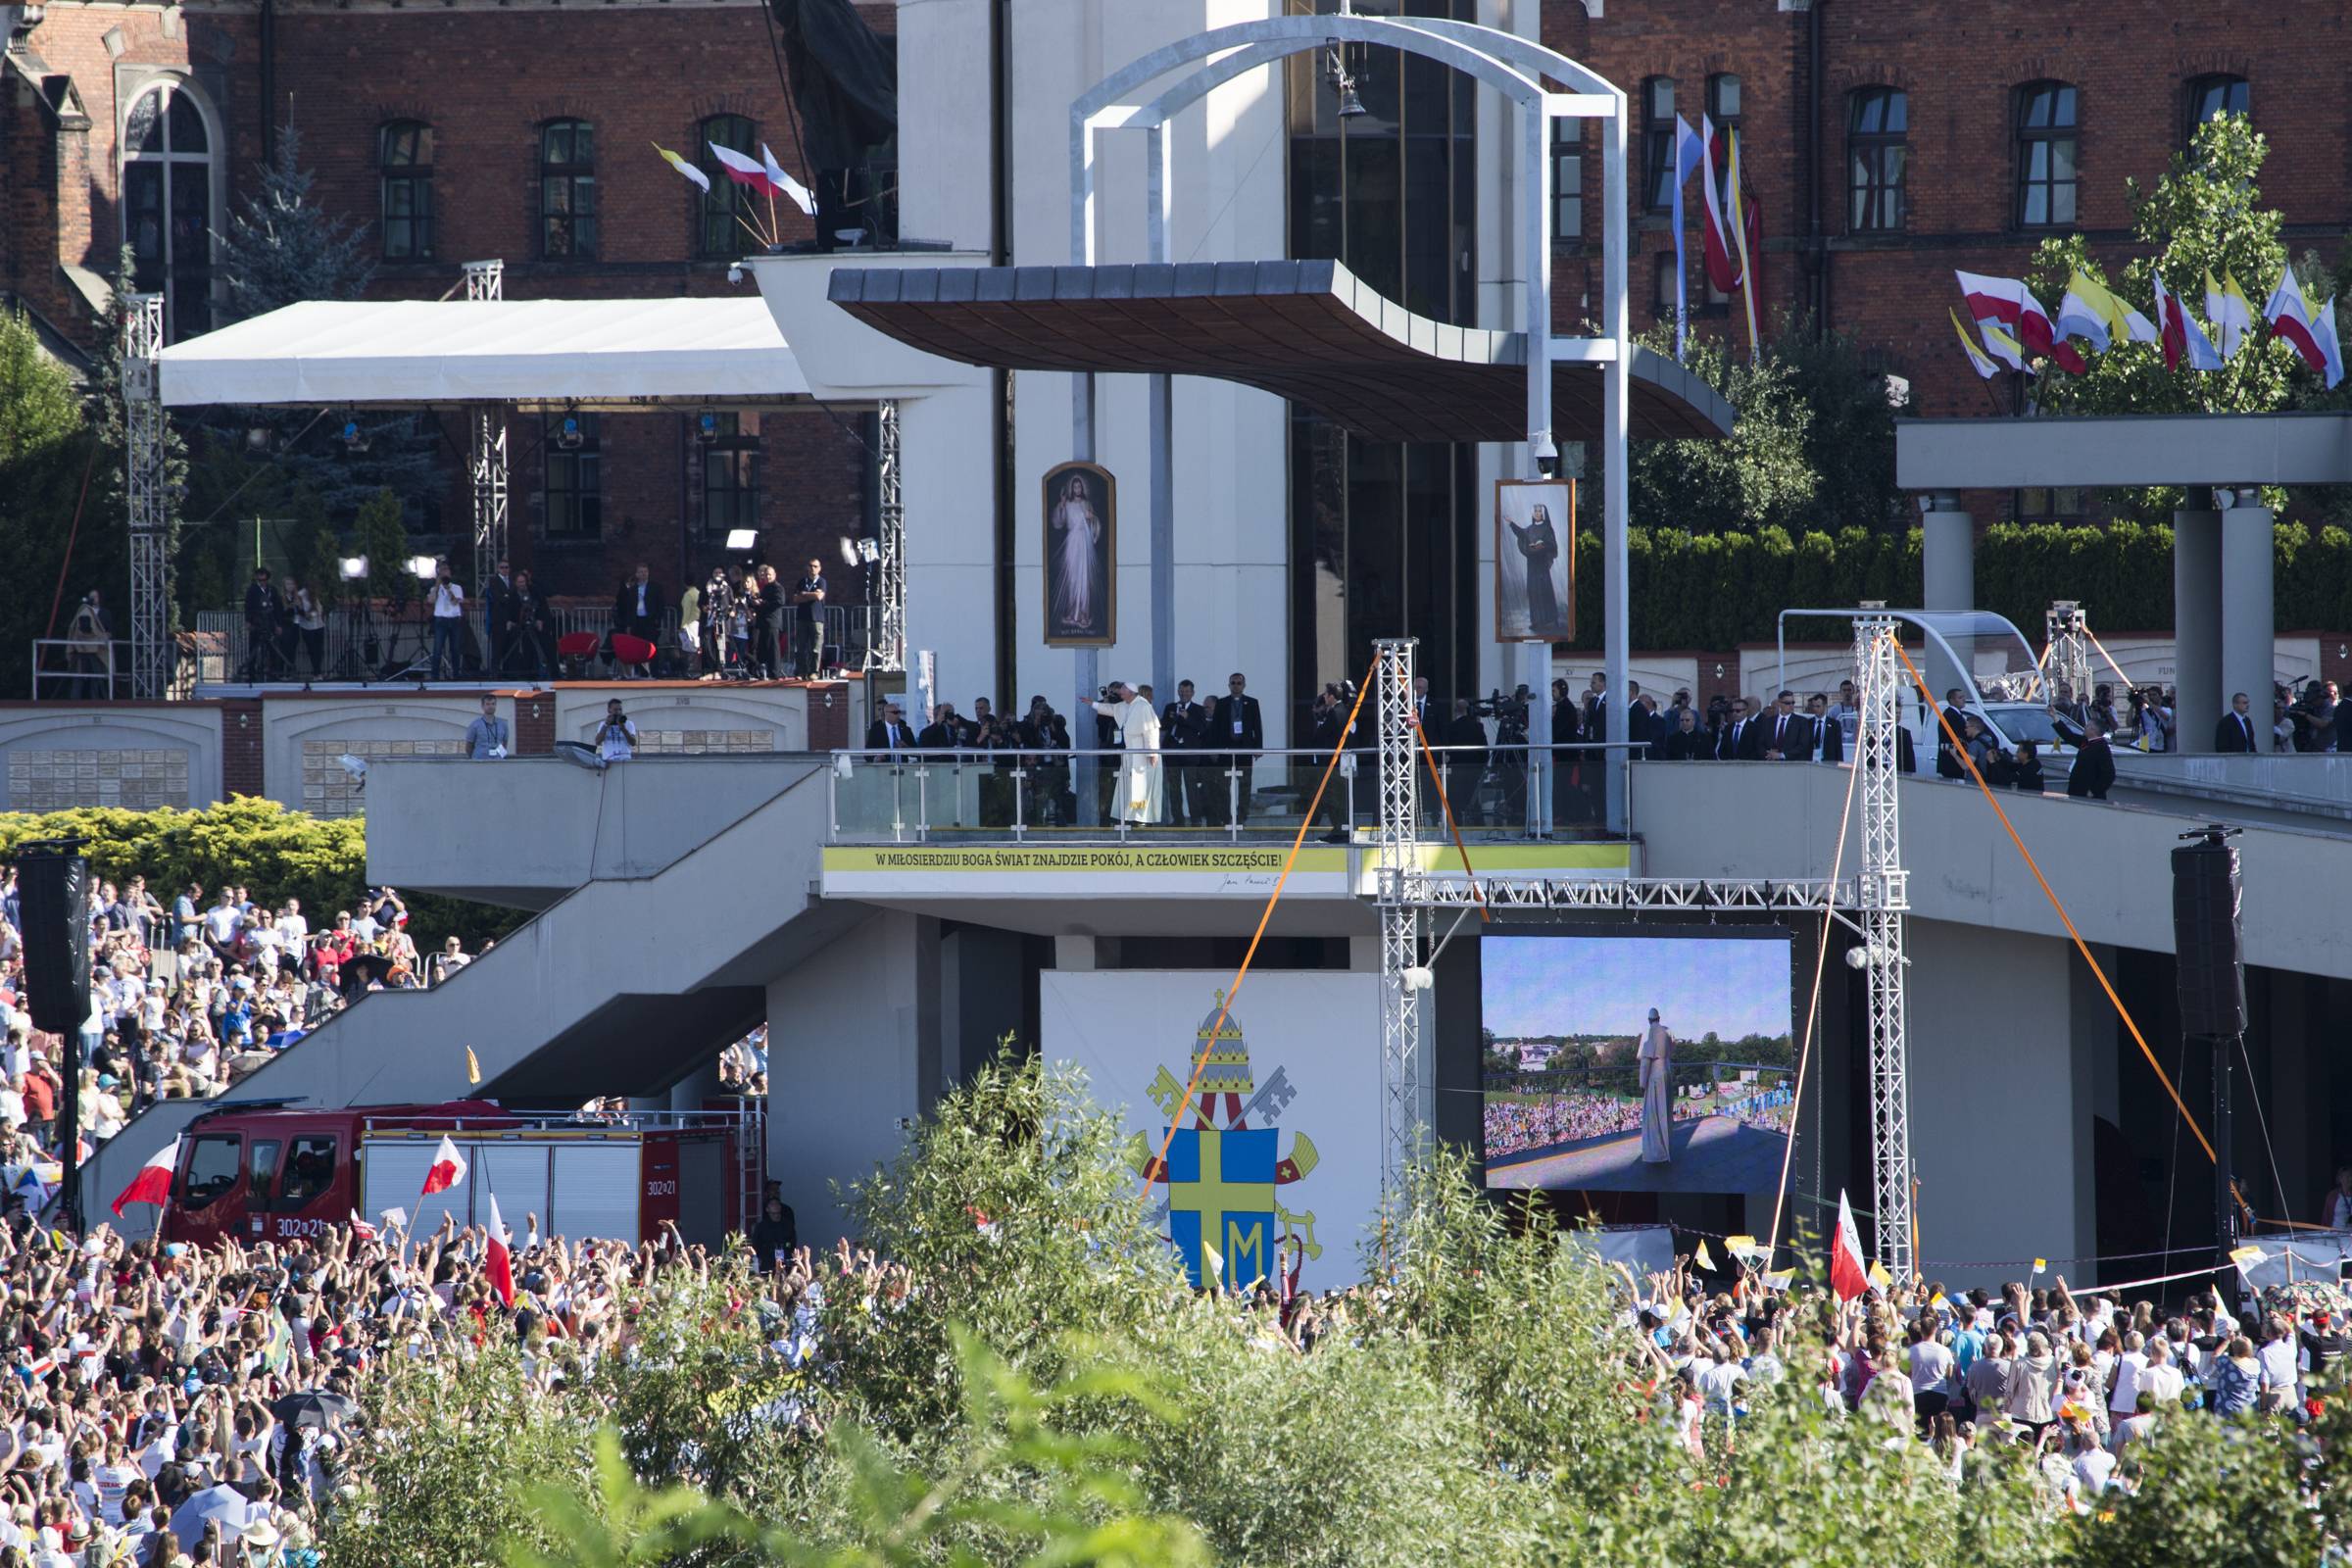 Sanktuarium w Łagiewnikach, World Youth Day 2016 in Krakow